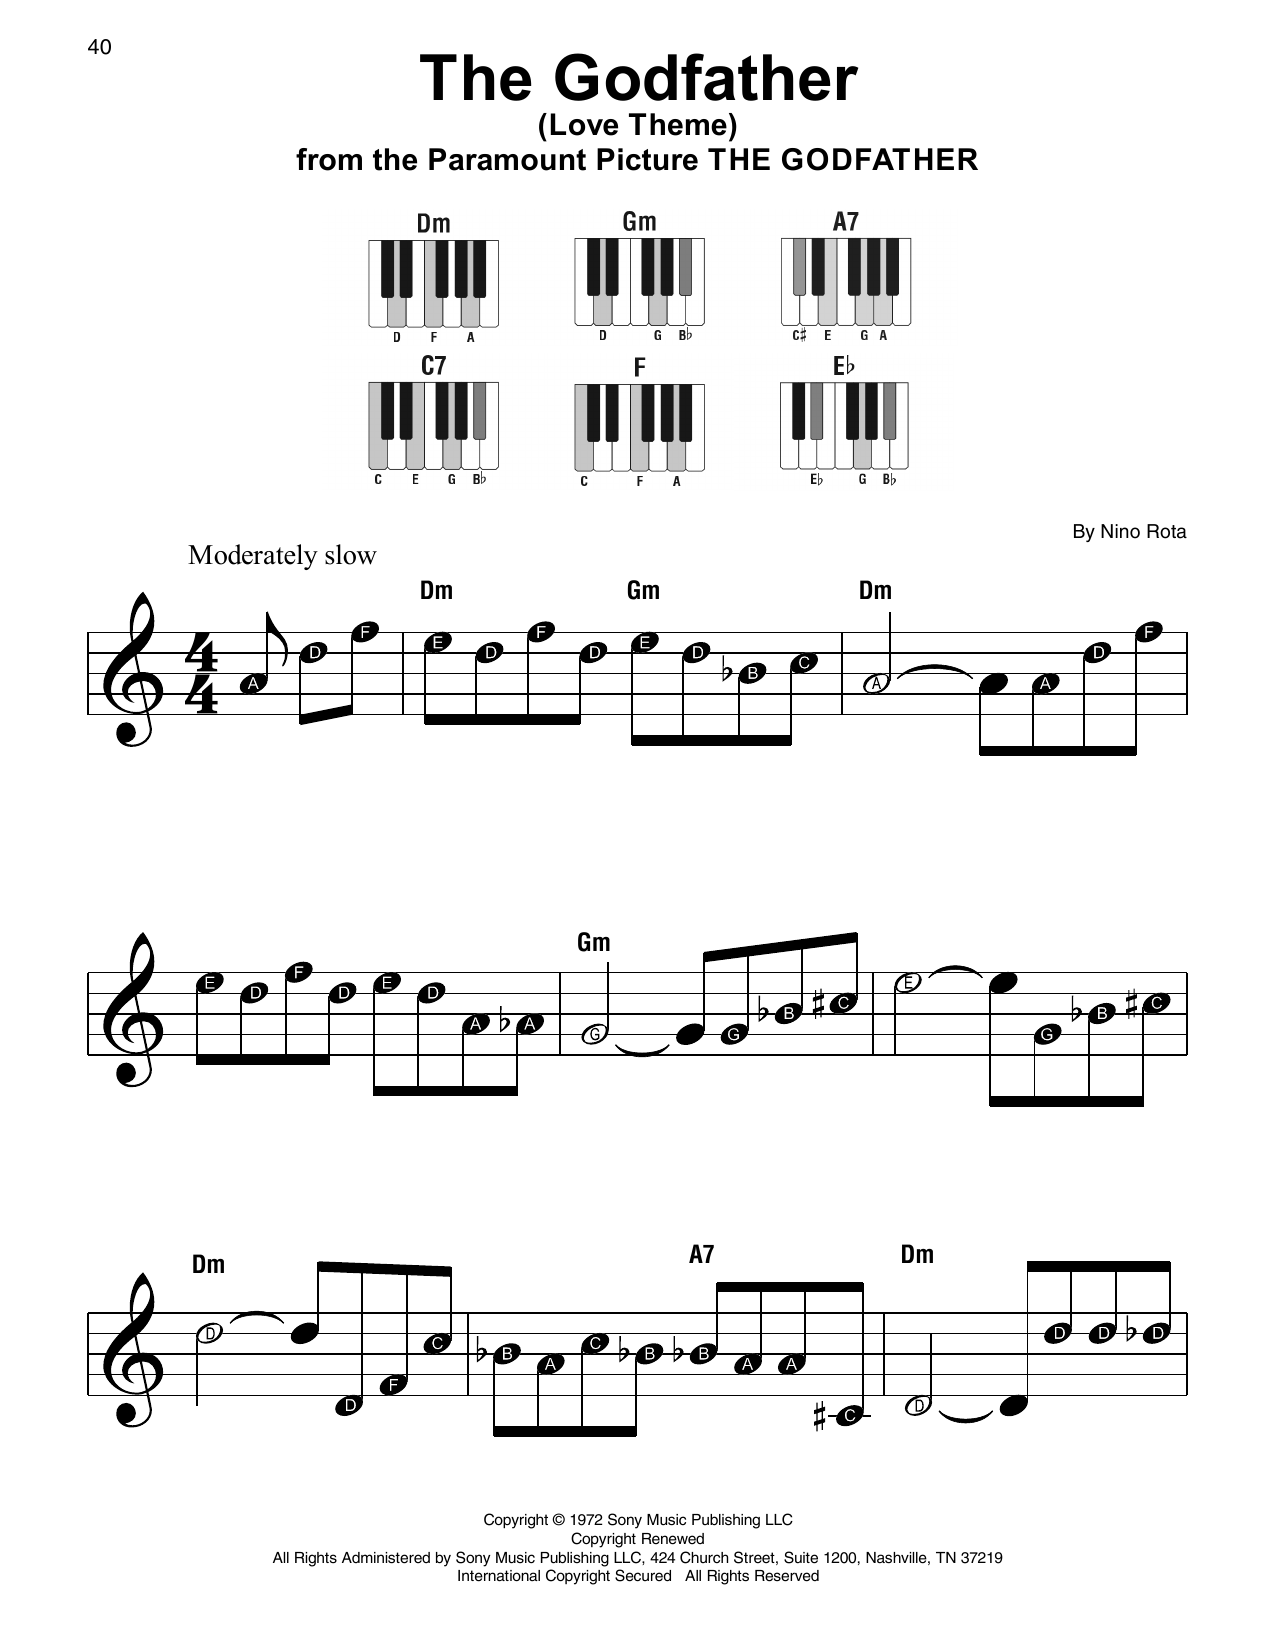 The Godfather (Love Theme) Sheet Music